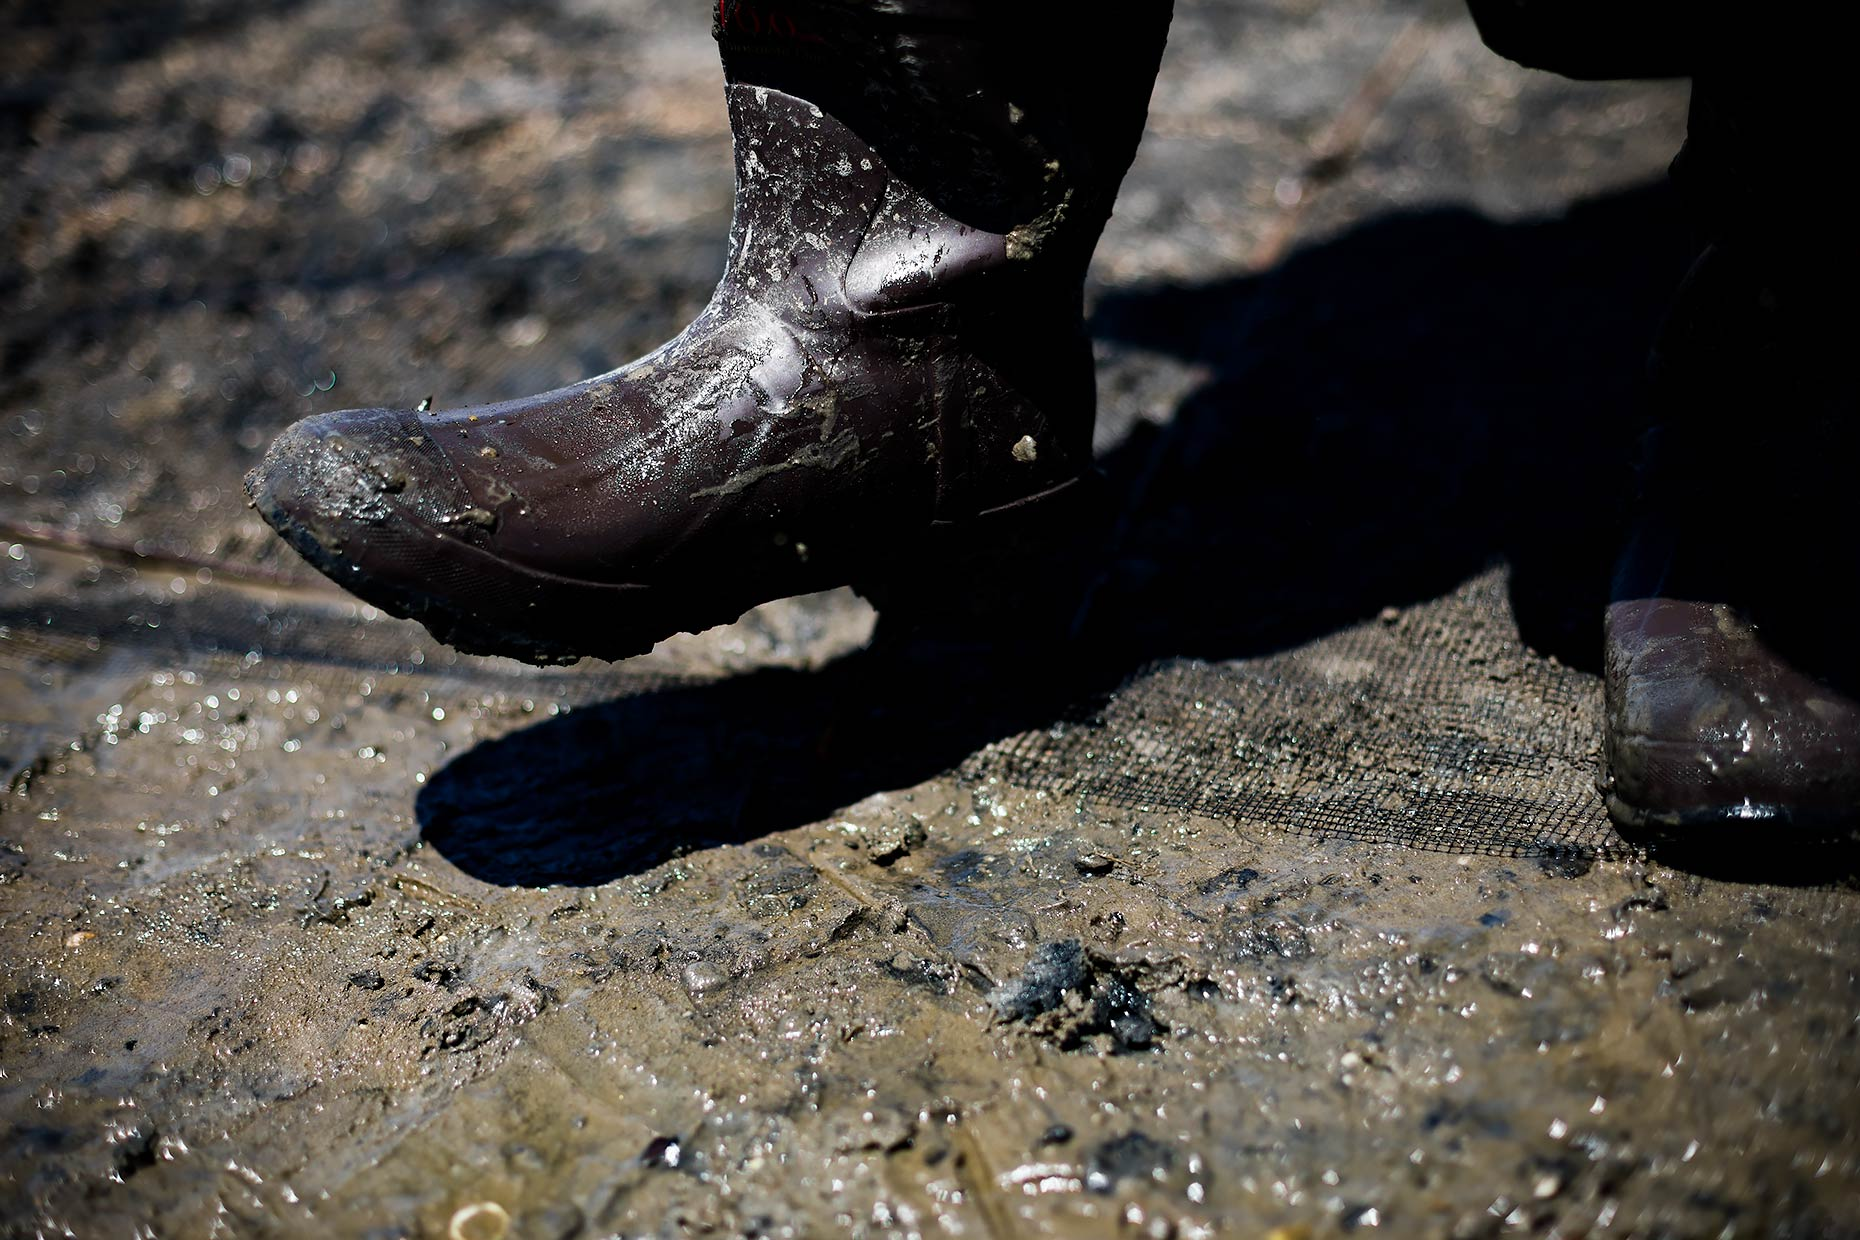 oyster-farmer-boots-in-mud